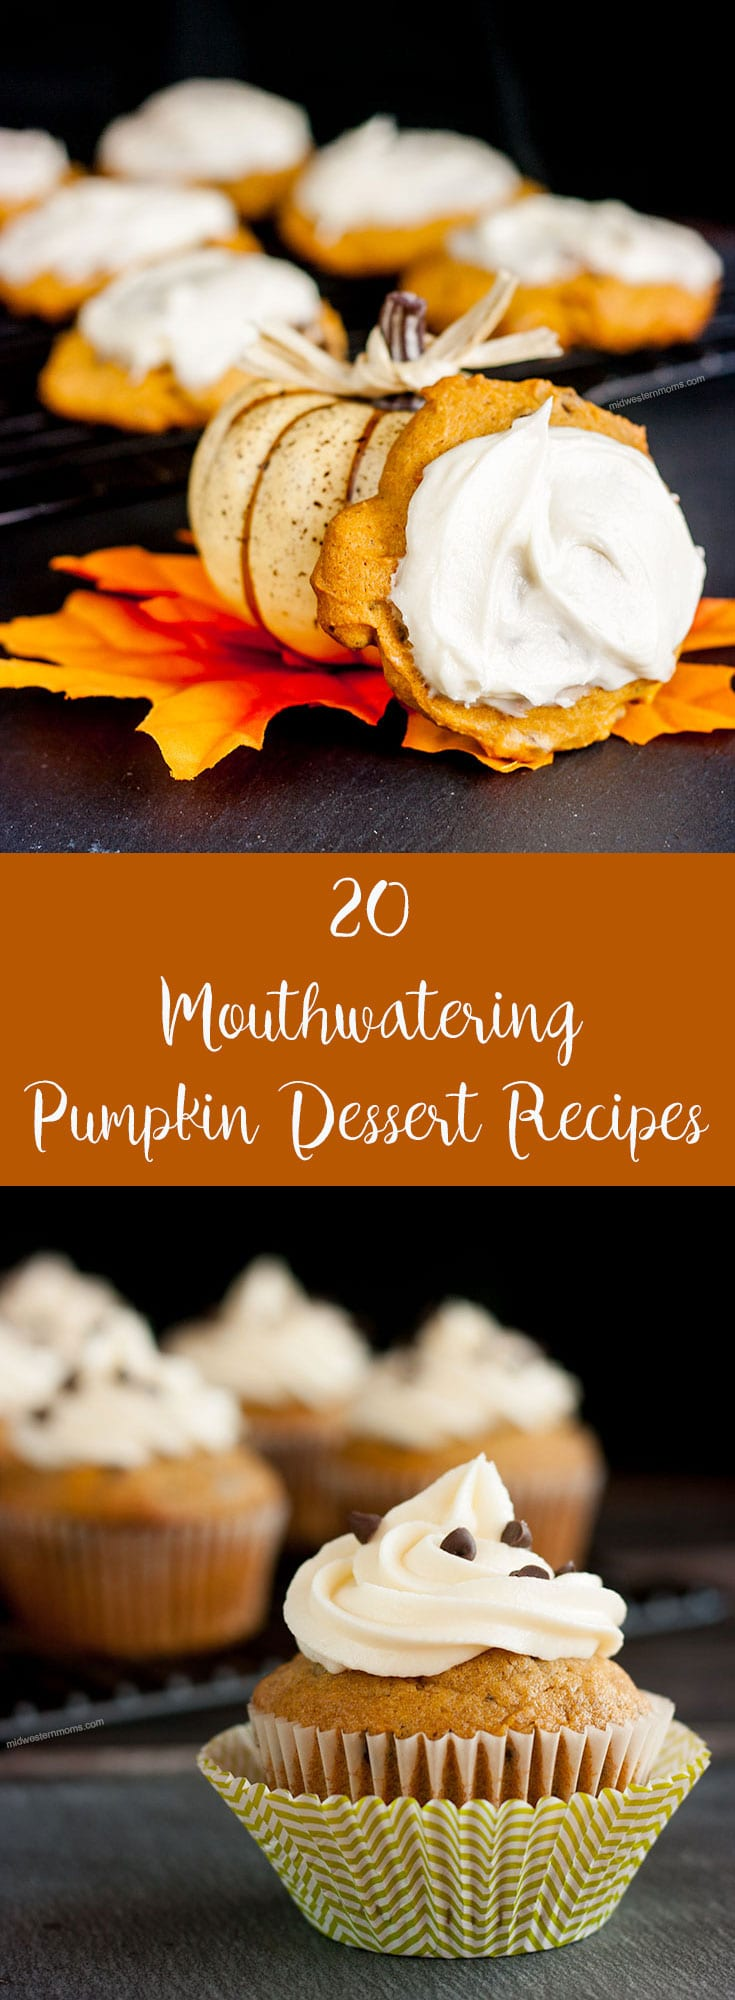 Celebrate with a little bit of pumpkin and spice with these delicious pumpkin dessert recipes. Everything from pumpkins cupcakes to pumpkin brownies.